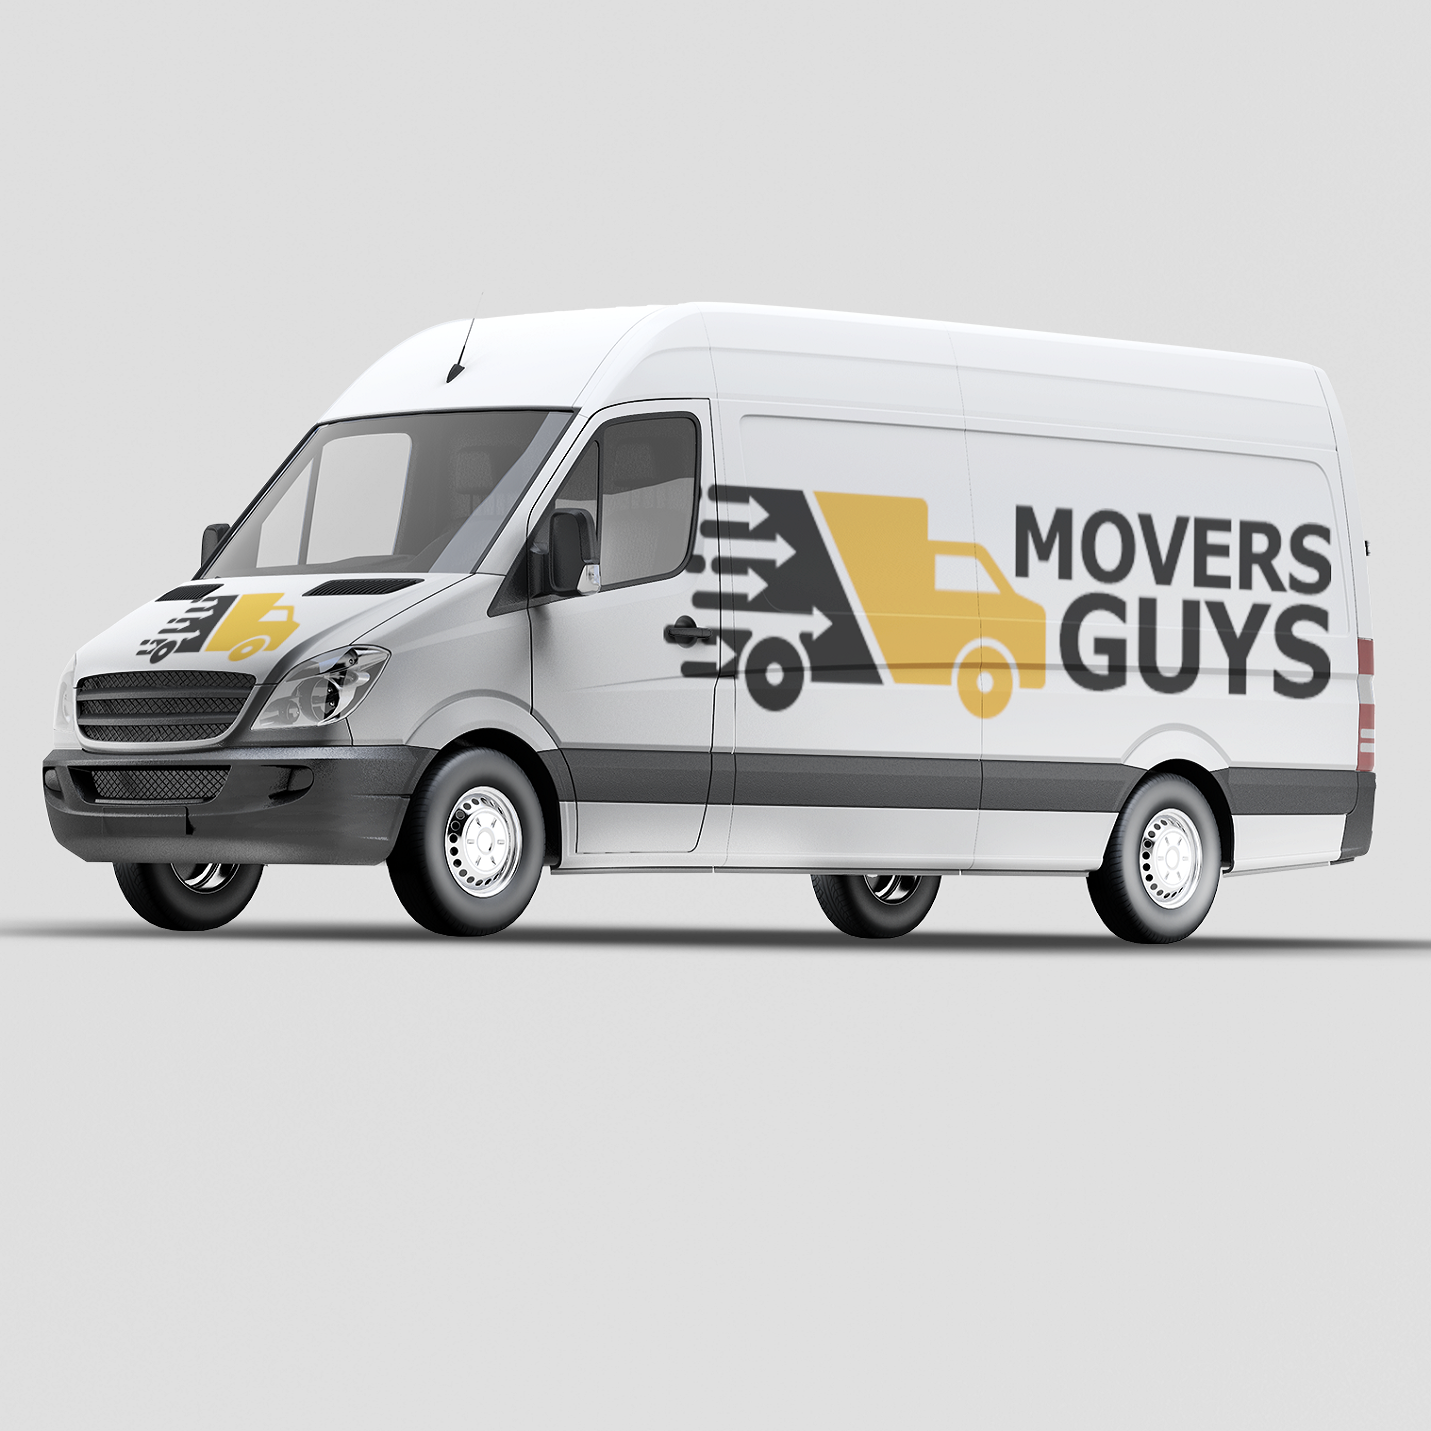 movers guys vehicle